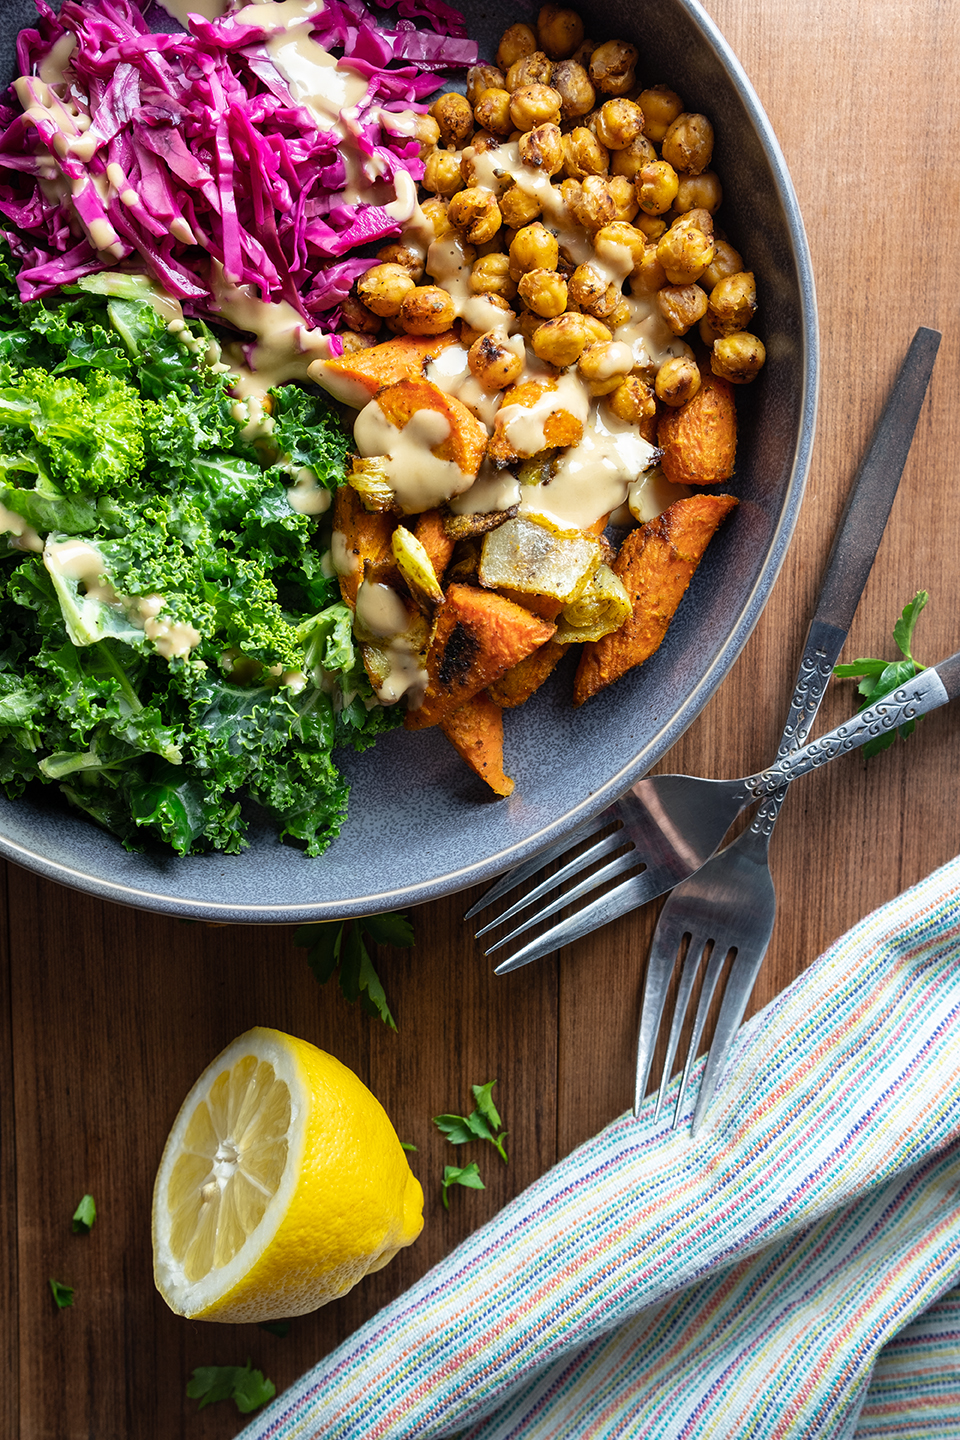 retouched  bowl of shredded cabbage, kale, and roasted chickpeas on a wooden table